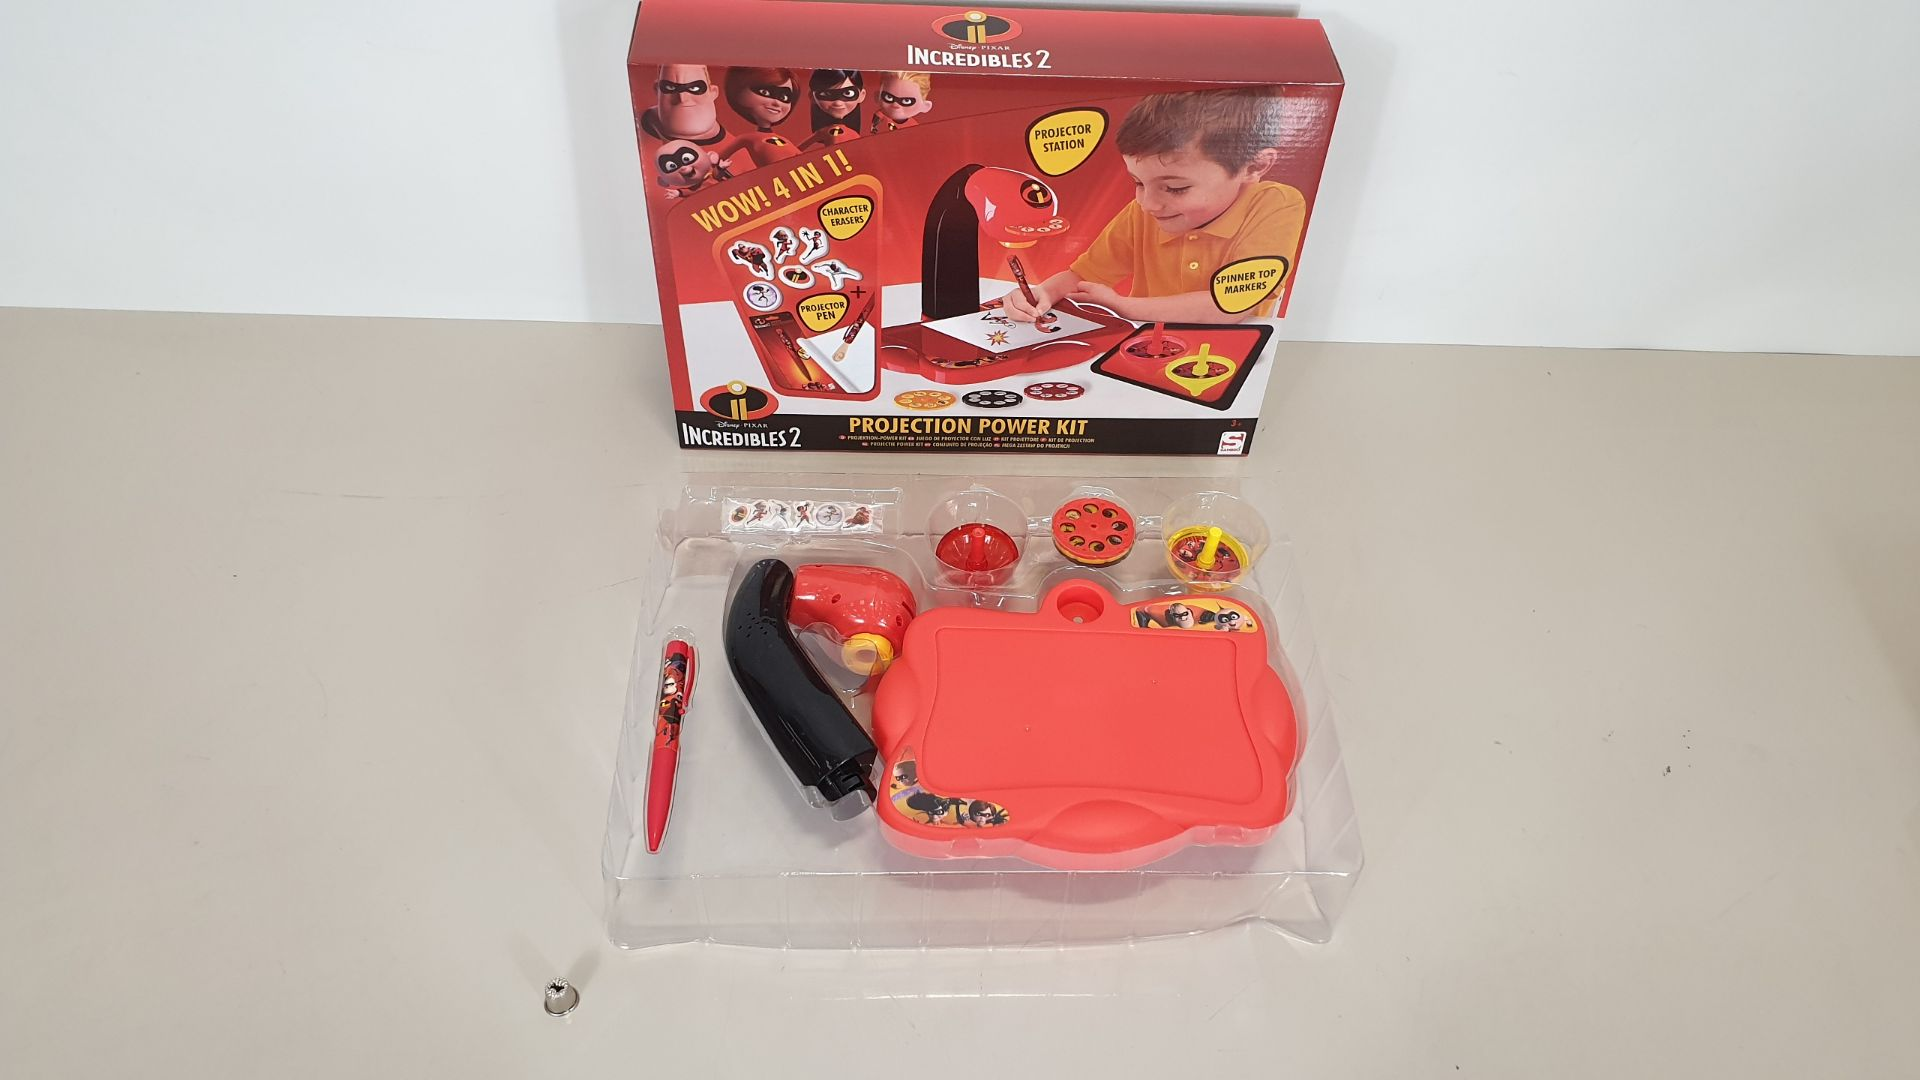 Lot 40 - 60 X BRAND NEW DISNEY PIXAR INCREDIBLES 2 WOW 4 IN 1 PROJECTION POWER KIT, INCLUDES PROJECTION